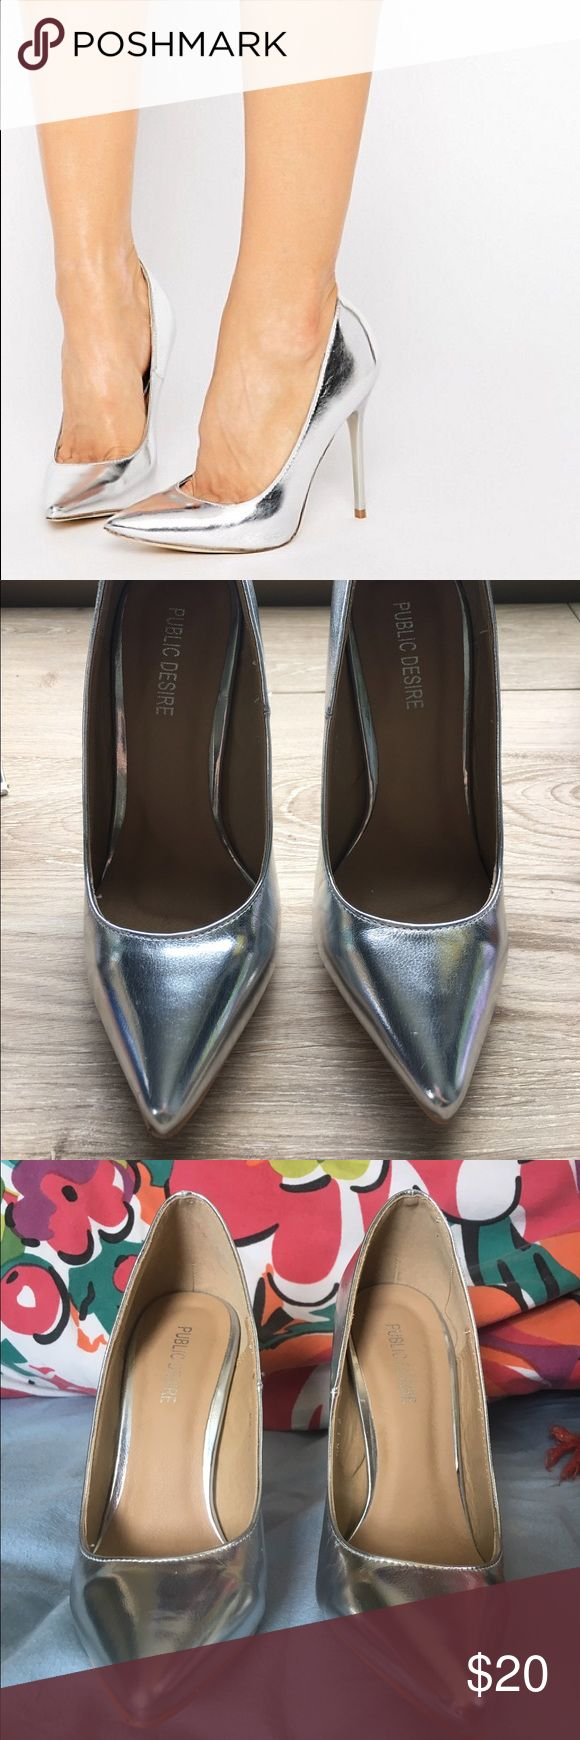 Public Desire Josie Silver Court Shoes Beautiful silver pumps by public desire, purchased on ASOS. Worn once in a bridal party. Great condition. Just has some marks on the sole from walking on cement and what not. Size 5. ASOS Shoes Heels